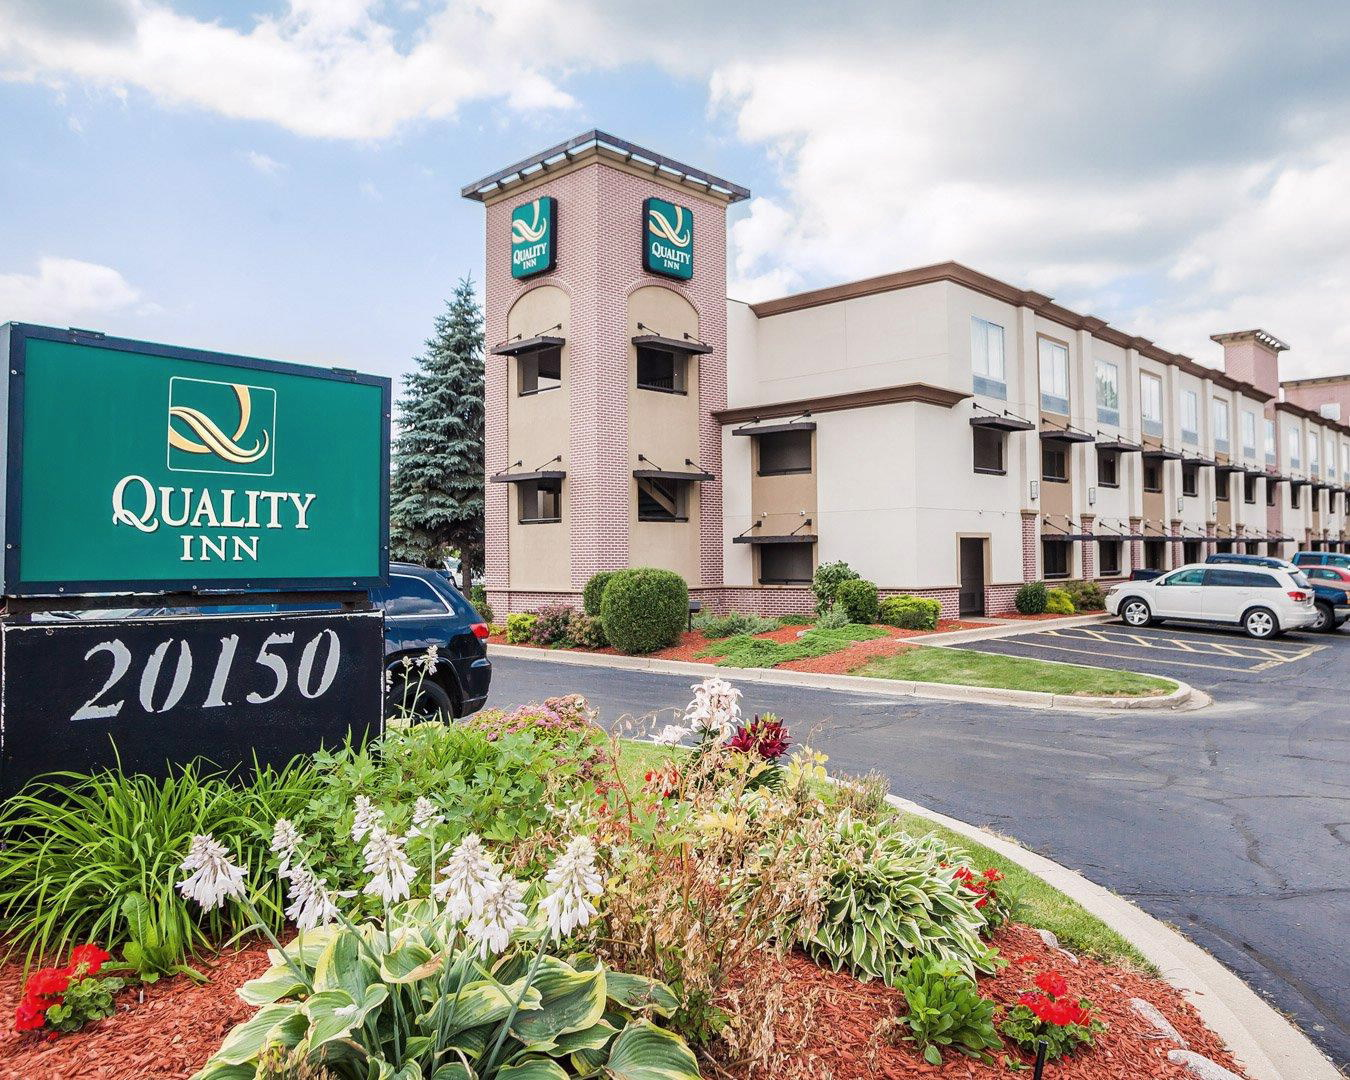 image of the Quality Inn